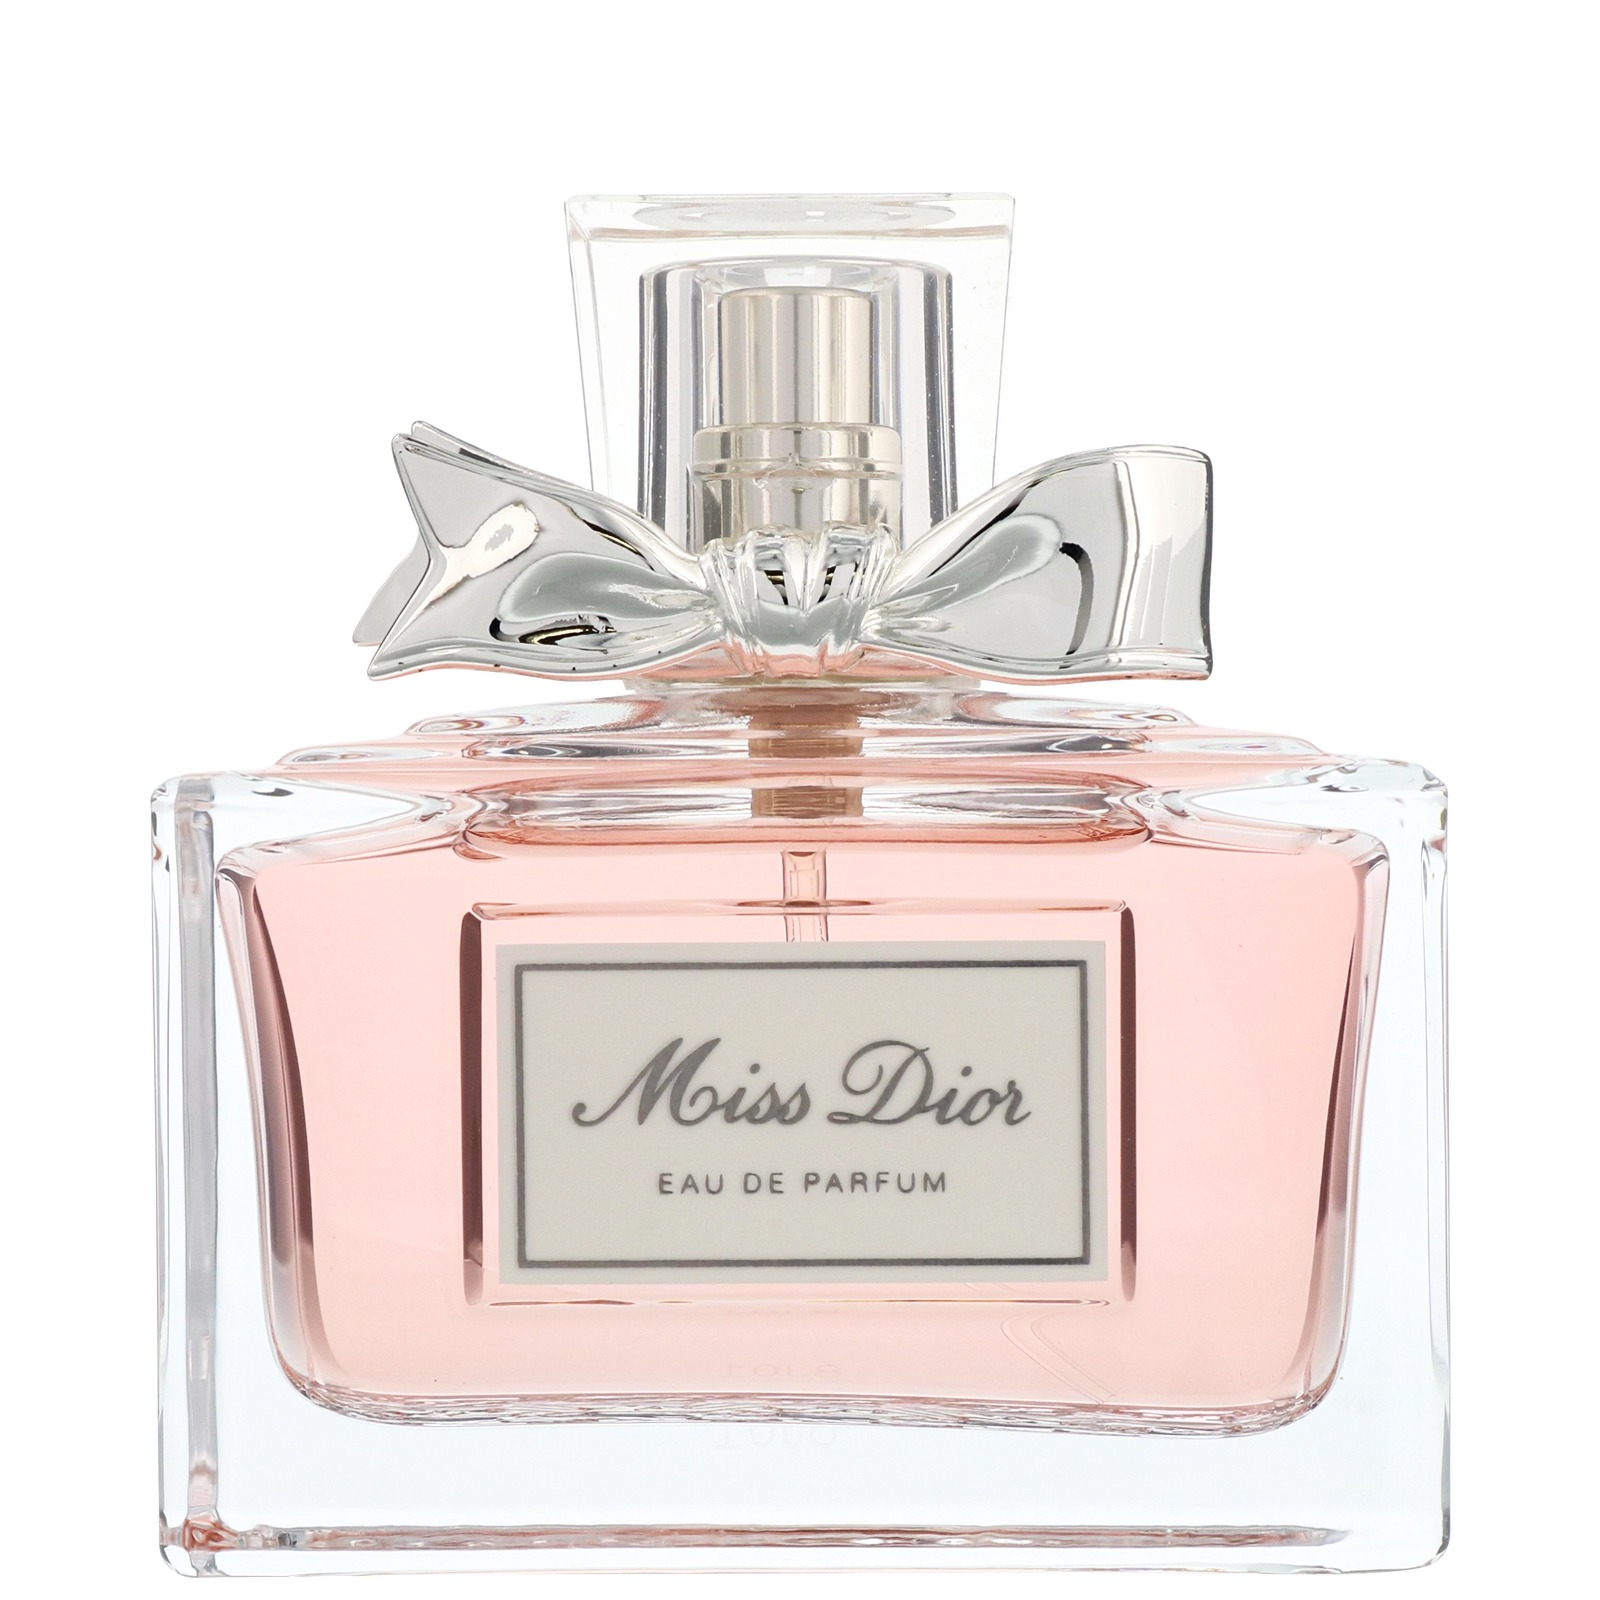 8e7145c90826 Dior Miss Dior Eau de Parfum Spray 50ml - Perfume